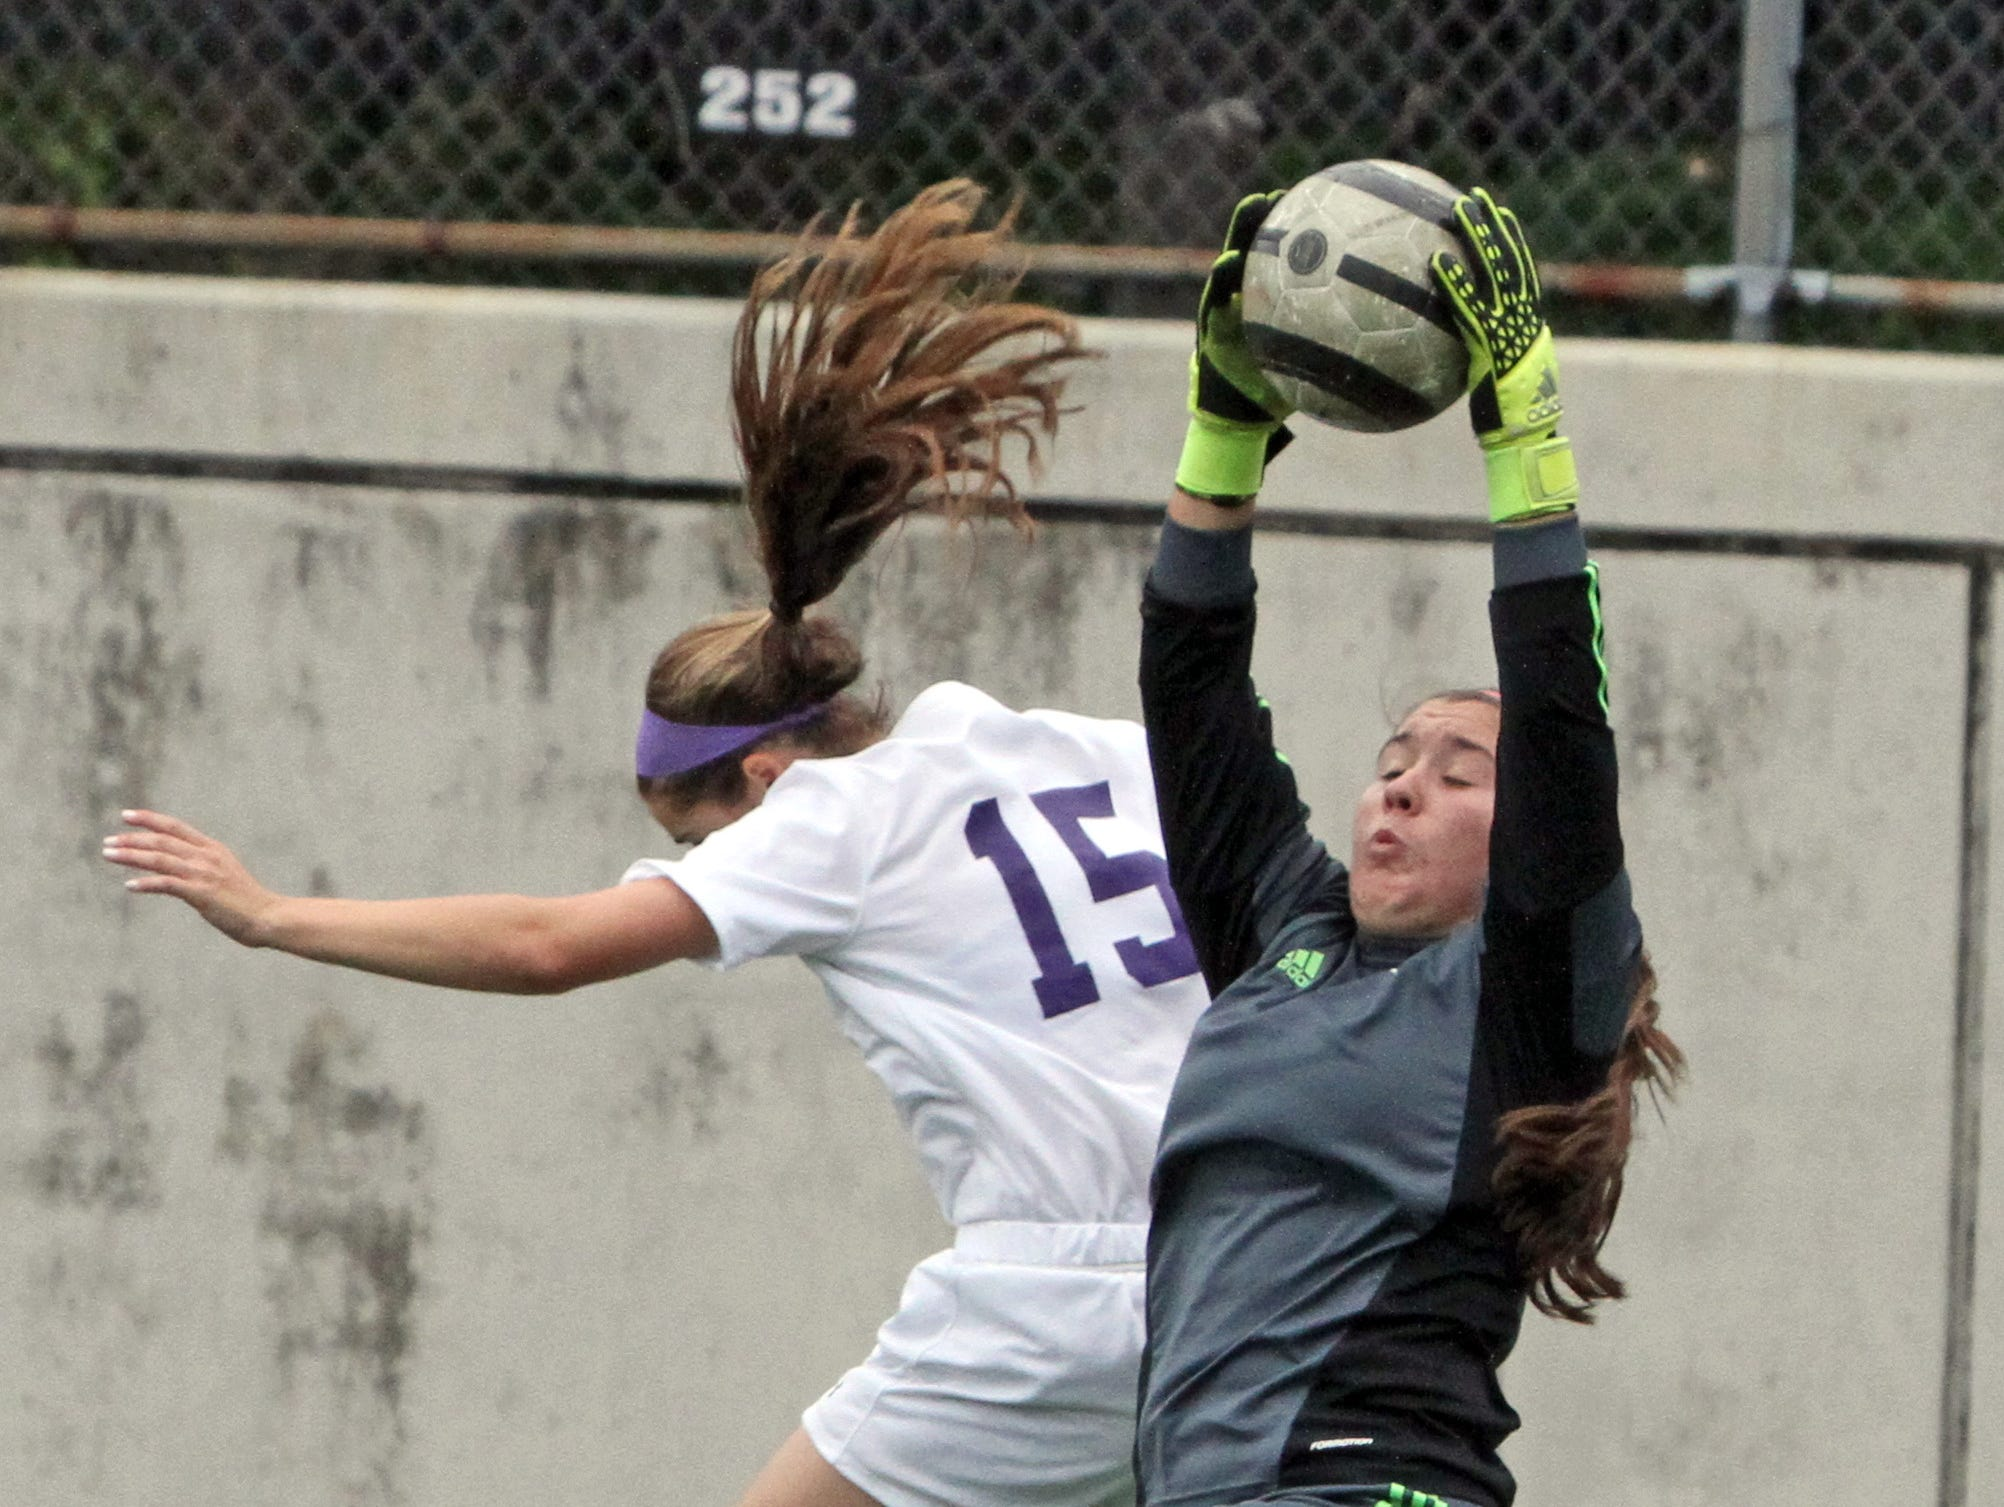 Ursuline keeper Jena Polinkovic makes the save as New Rochelle's Sophie Wolf pressures her during a varsity soccer match at New Rochelle High School Sept. 30, 3015.